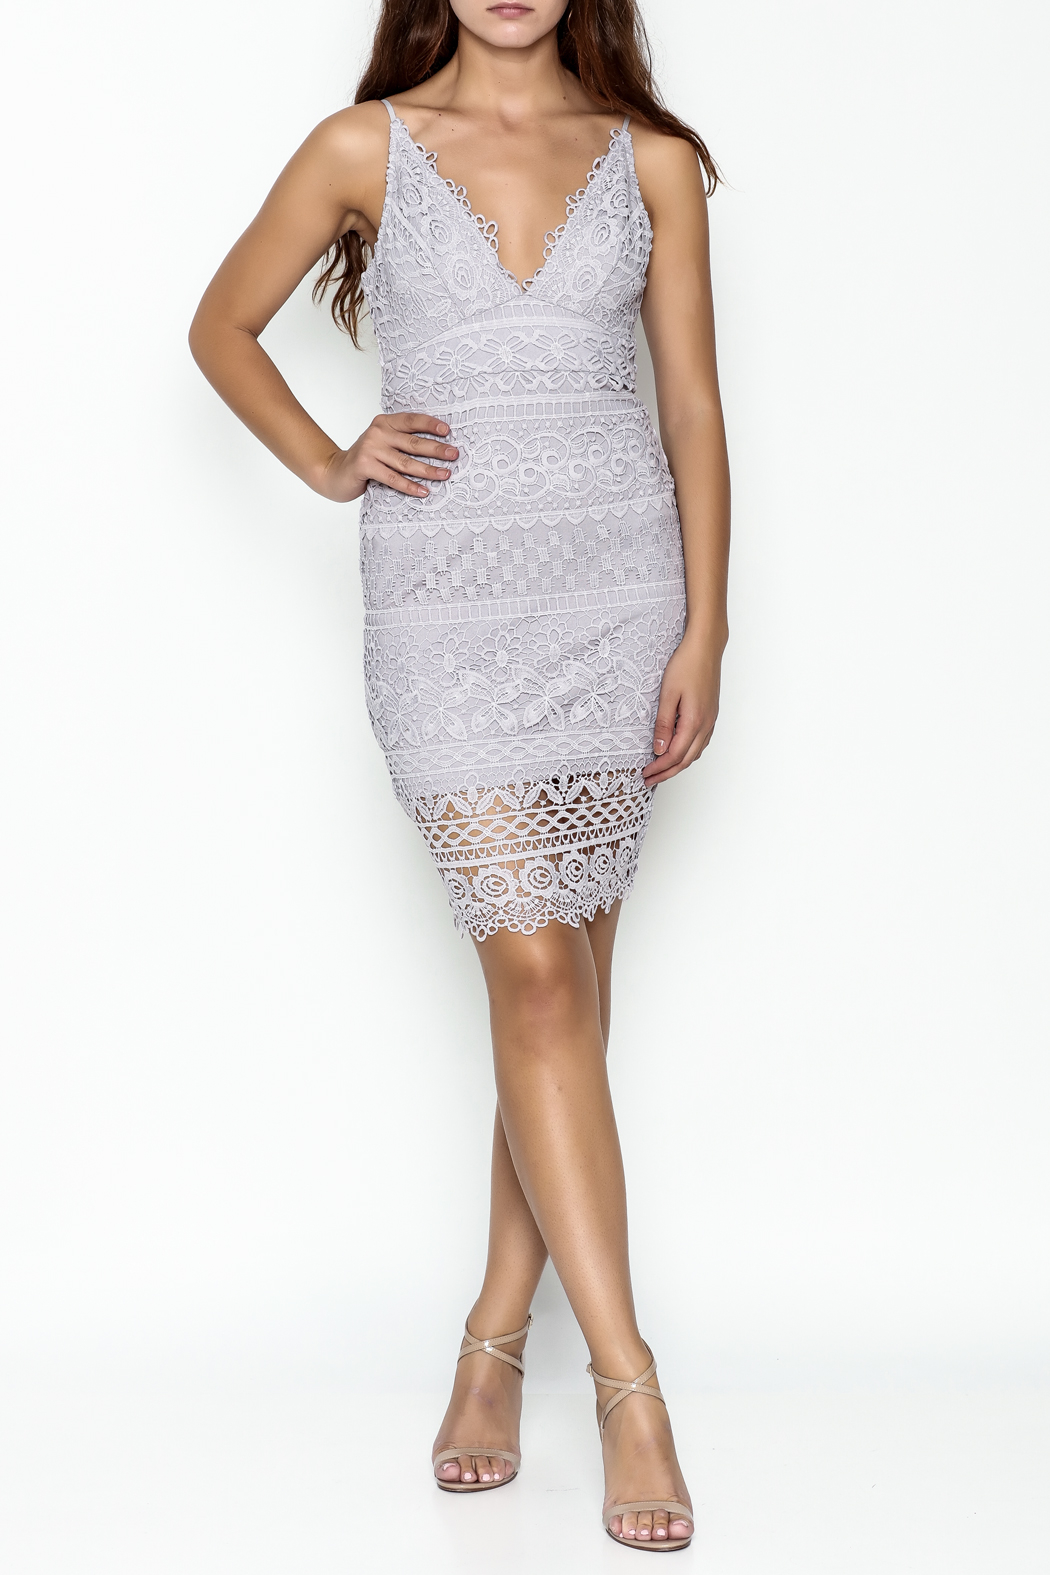 Ark & Co. Lace Dress - Side Cropped Image